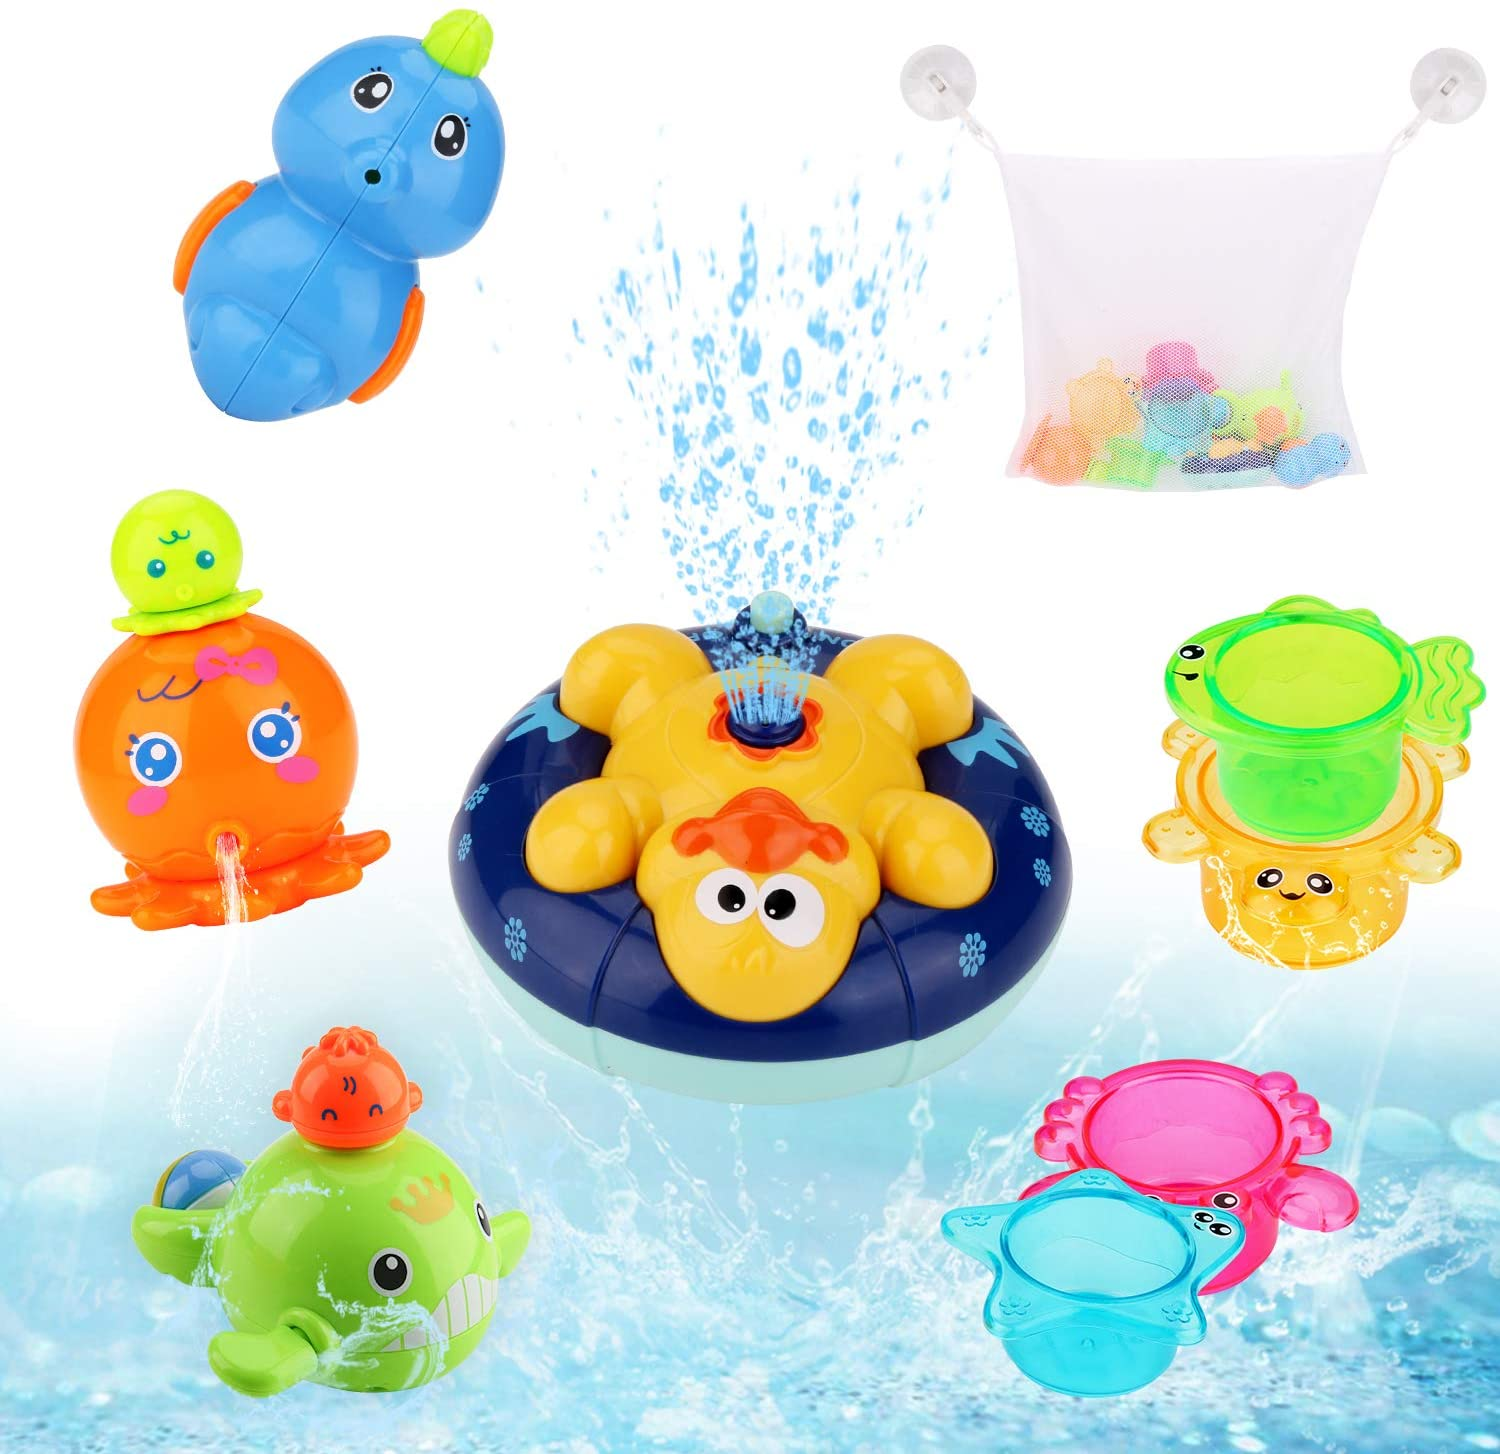 BBLIKE Bath Toys for Toddlers, Mold Free Baby Bath Toys w/ Organizer Storage Bag, Stacking Cups Toy, Wind Up Bathtub Toy for Age 18 Months+